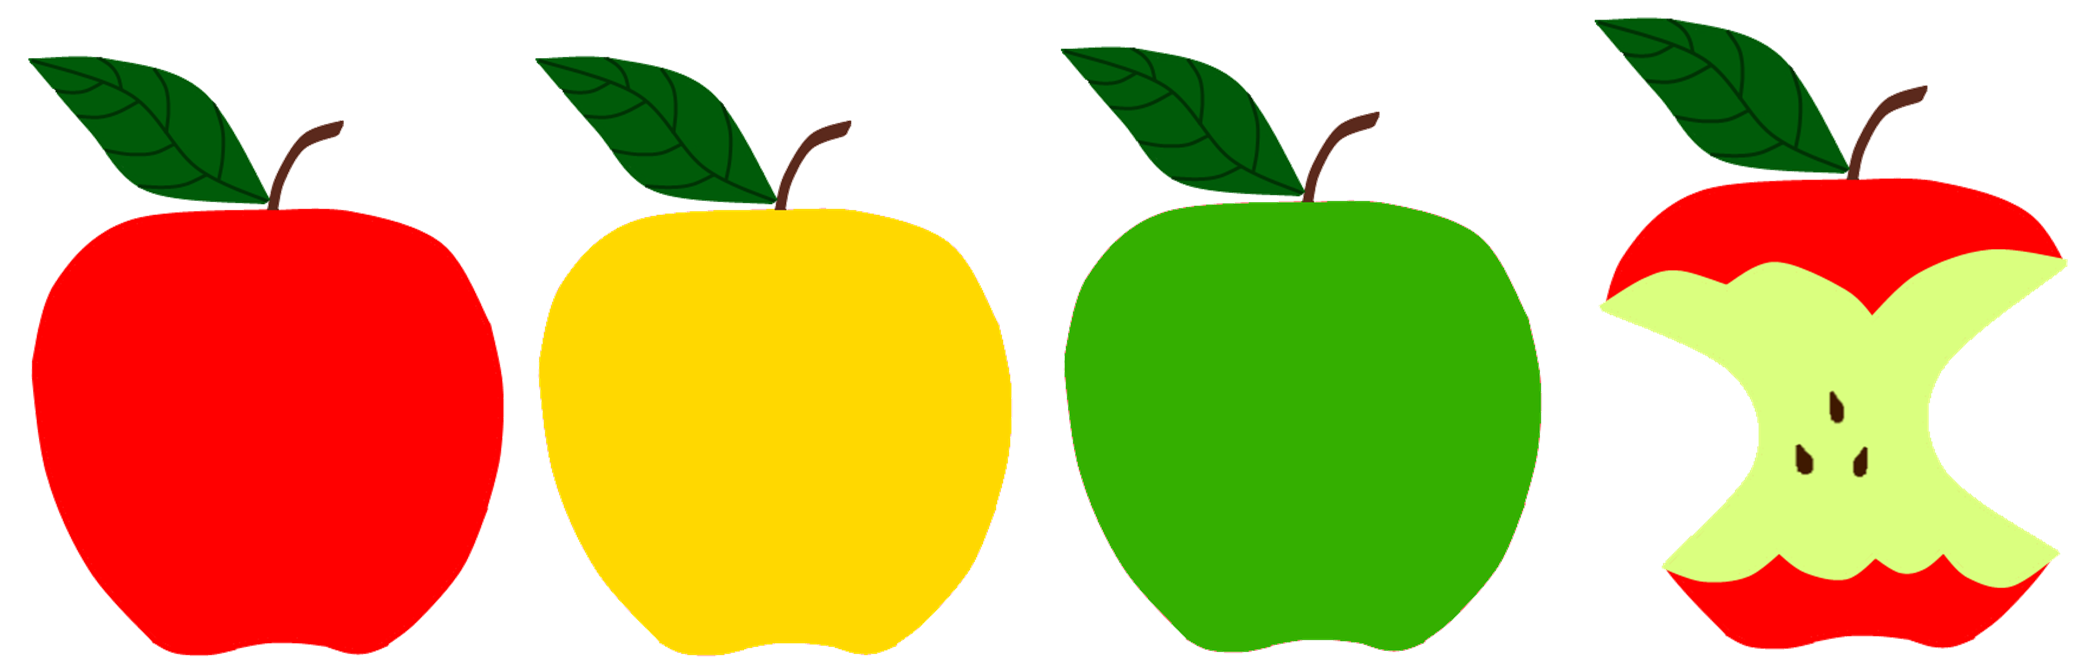 Apples falling png. Sunflower storytime red green